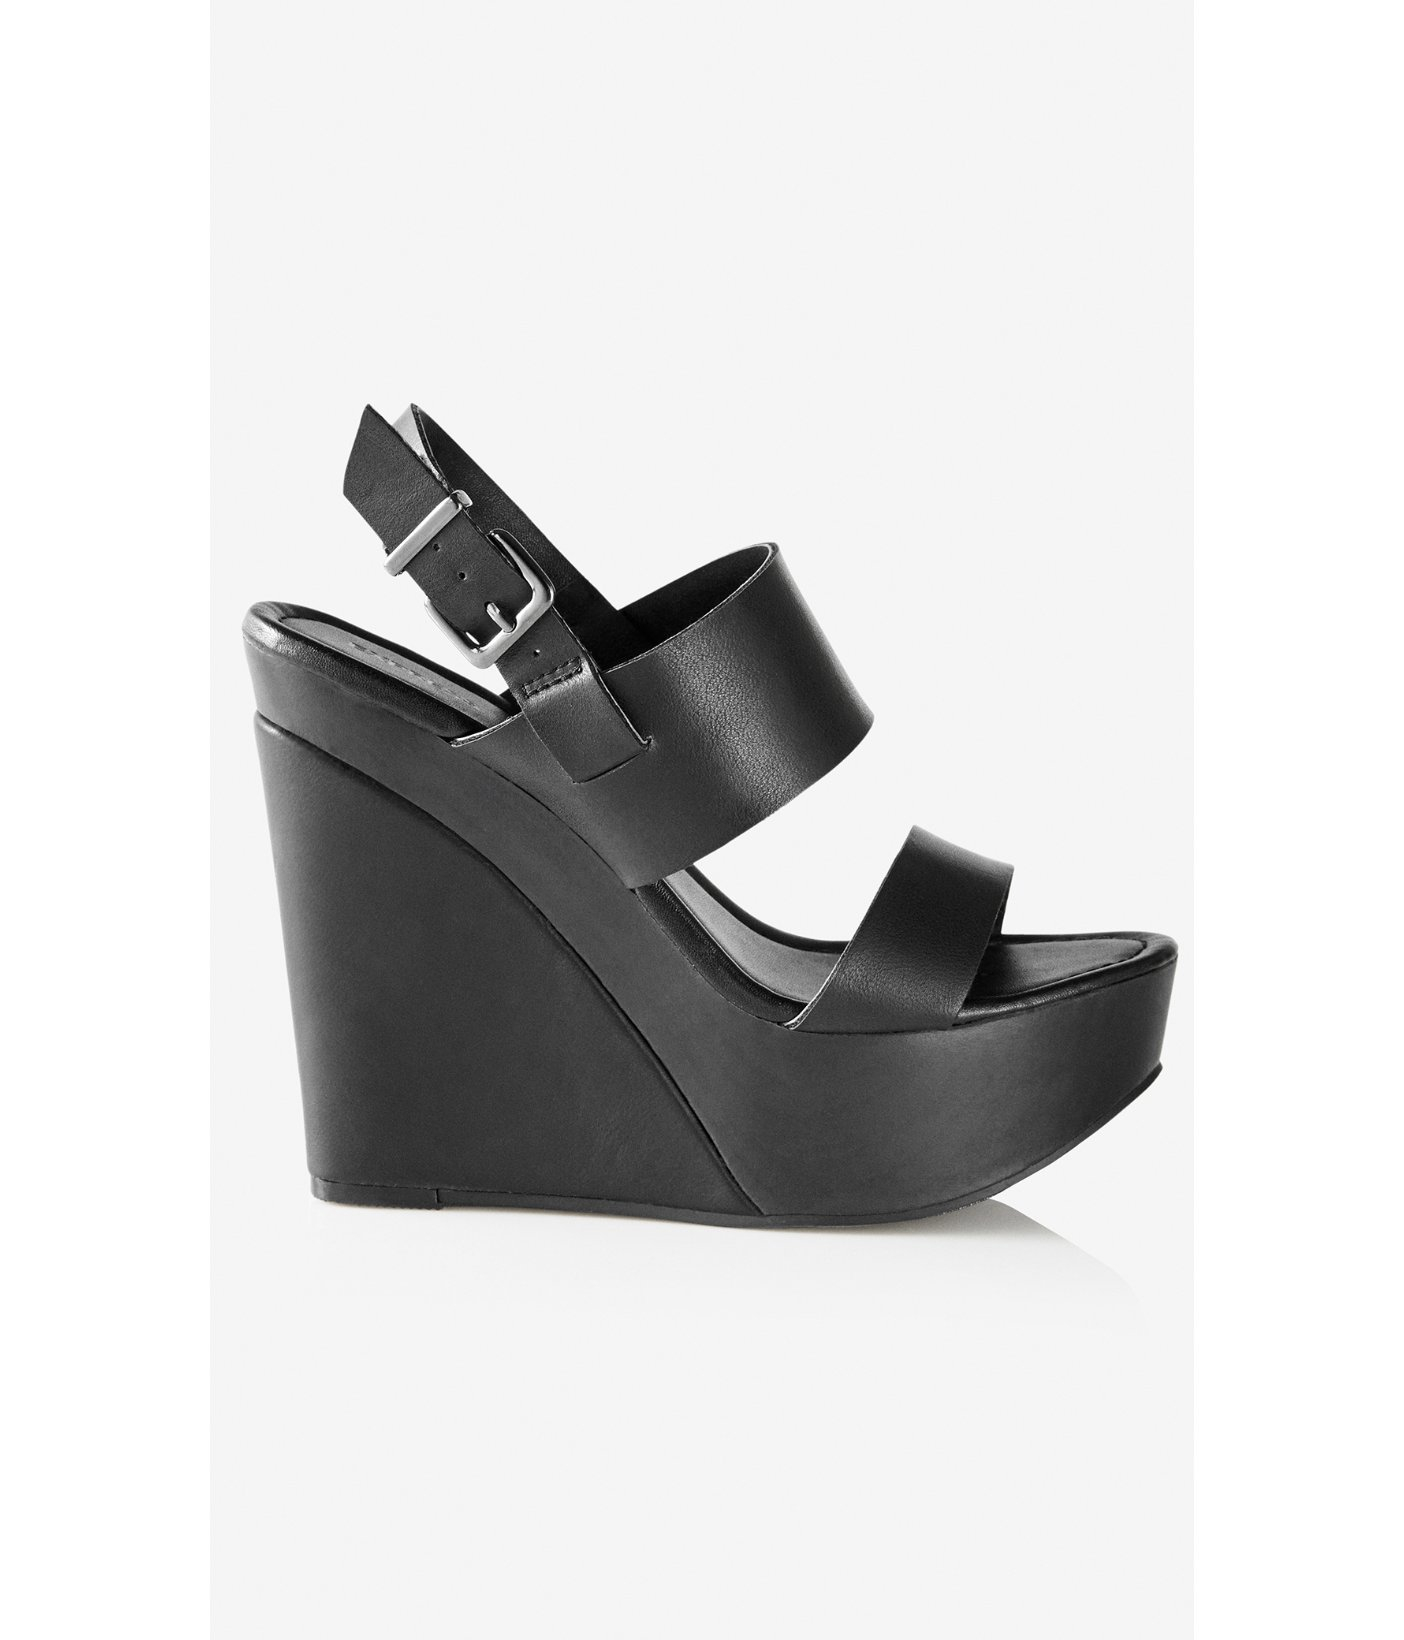 53155759eaf Express Wide Double Strap Platform Wedge Sandal in Black - Lyst